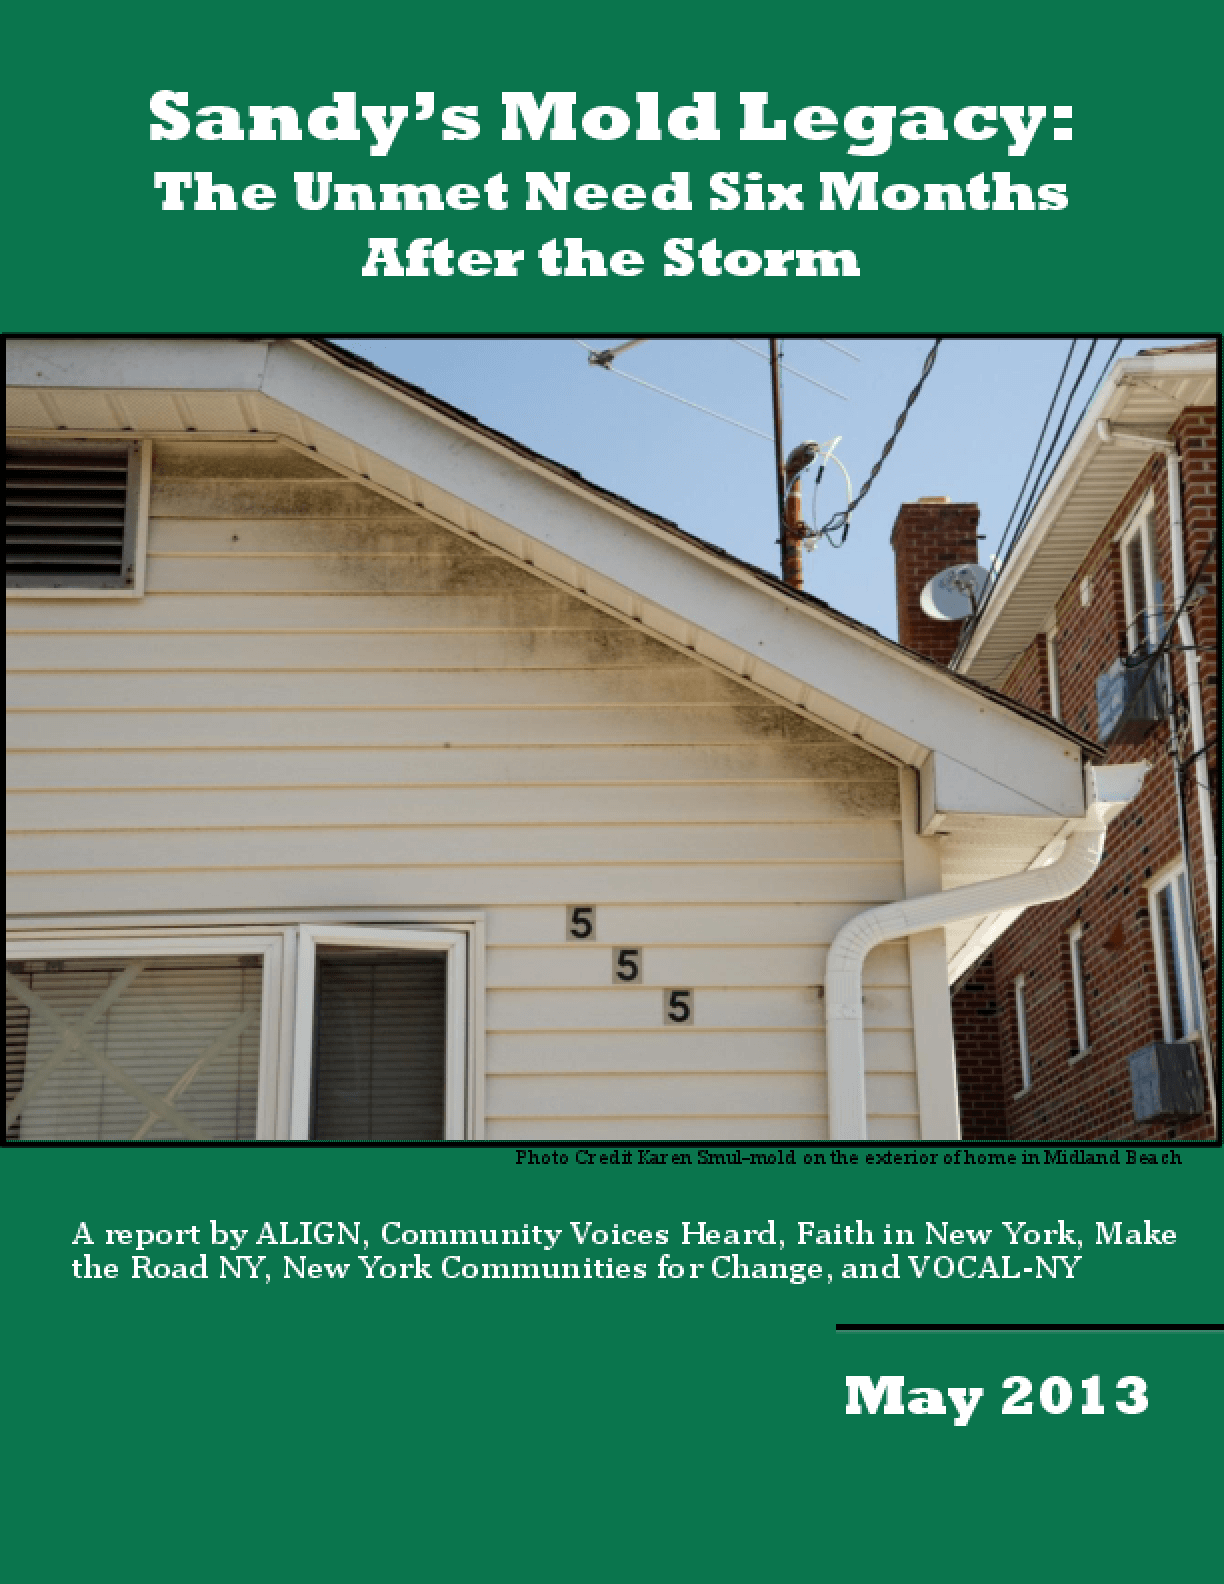 Sandy's Mold Legacy: The Unmet Need Six Months After the Storm